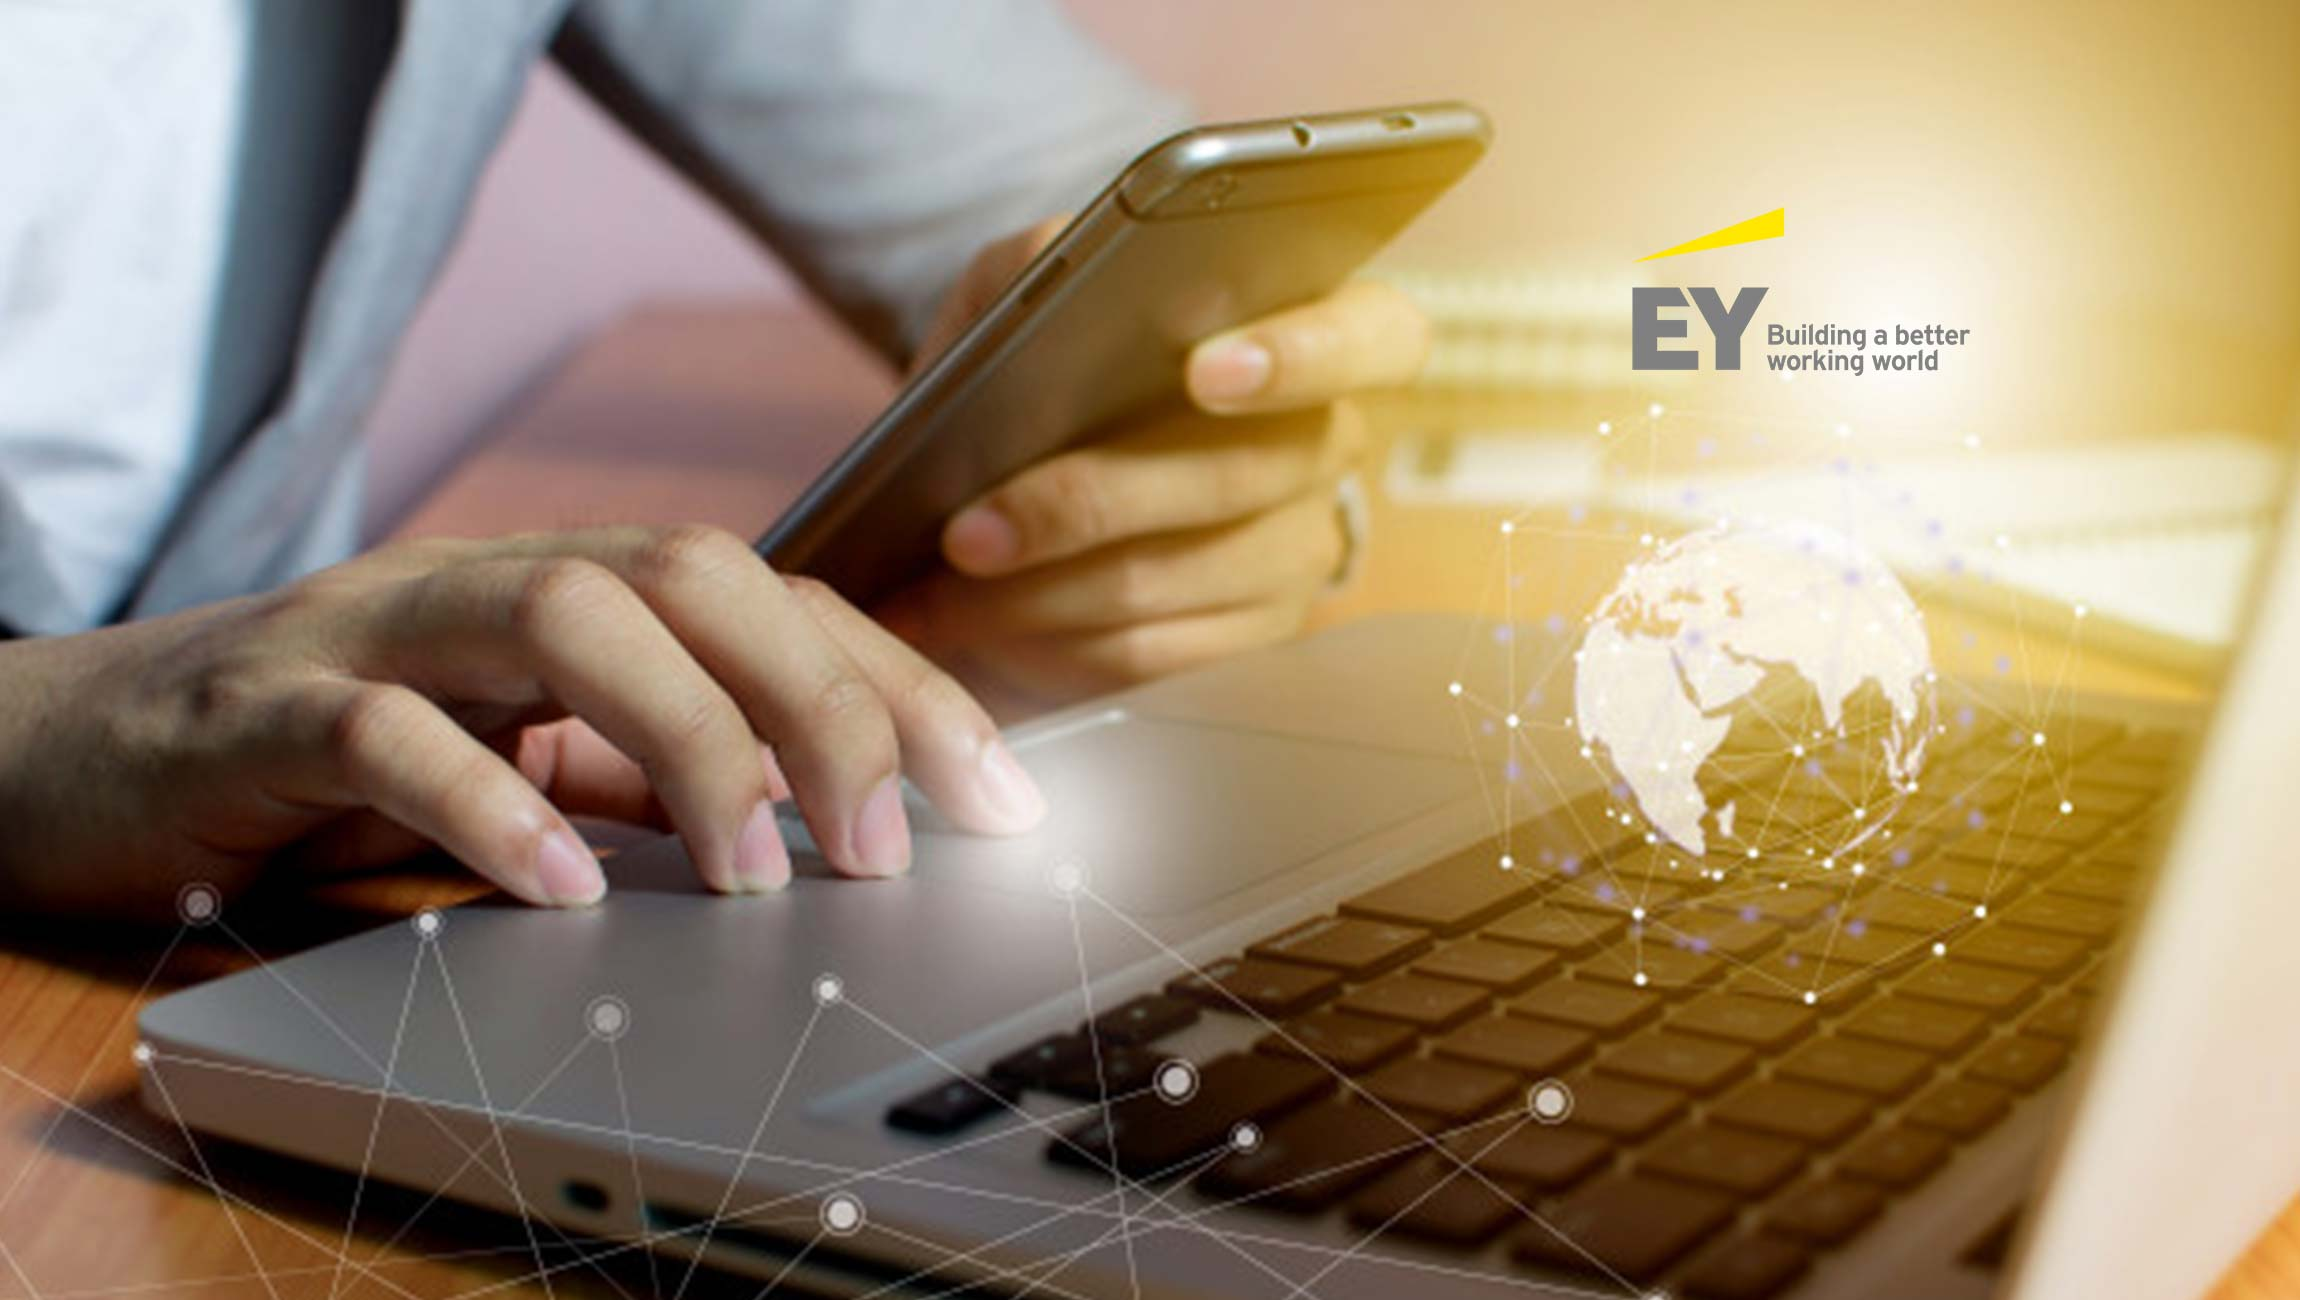 EY Launches Baseline Protocol, an Open Source Initiative for the Public Ethereum Blockchain